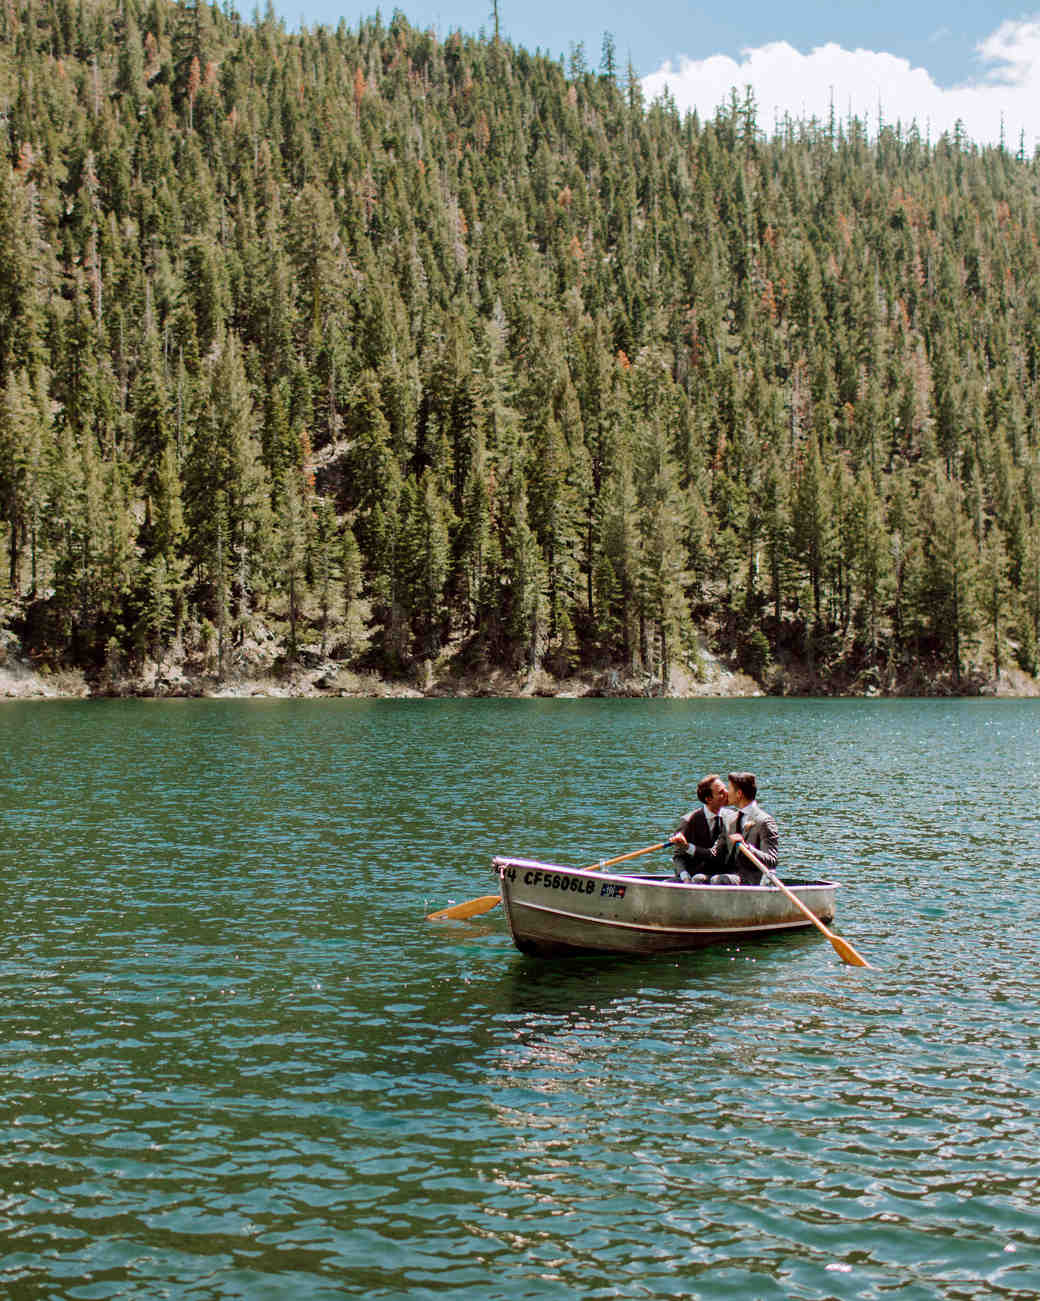 Court & Kelsey kissing in canoe on lake